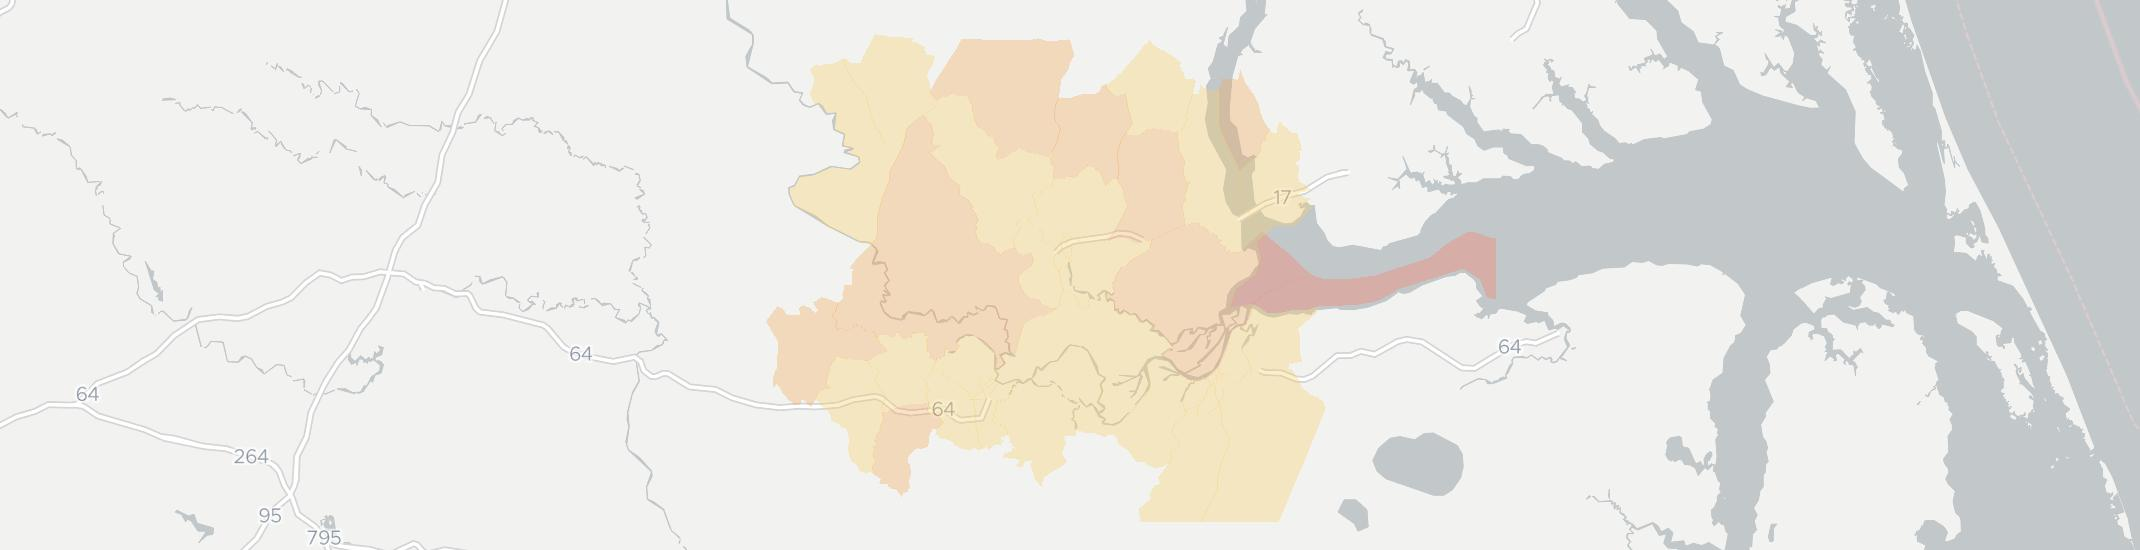 Windsor Internet Competition Map. Click for interactive map.